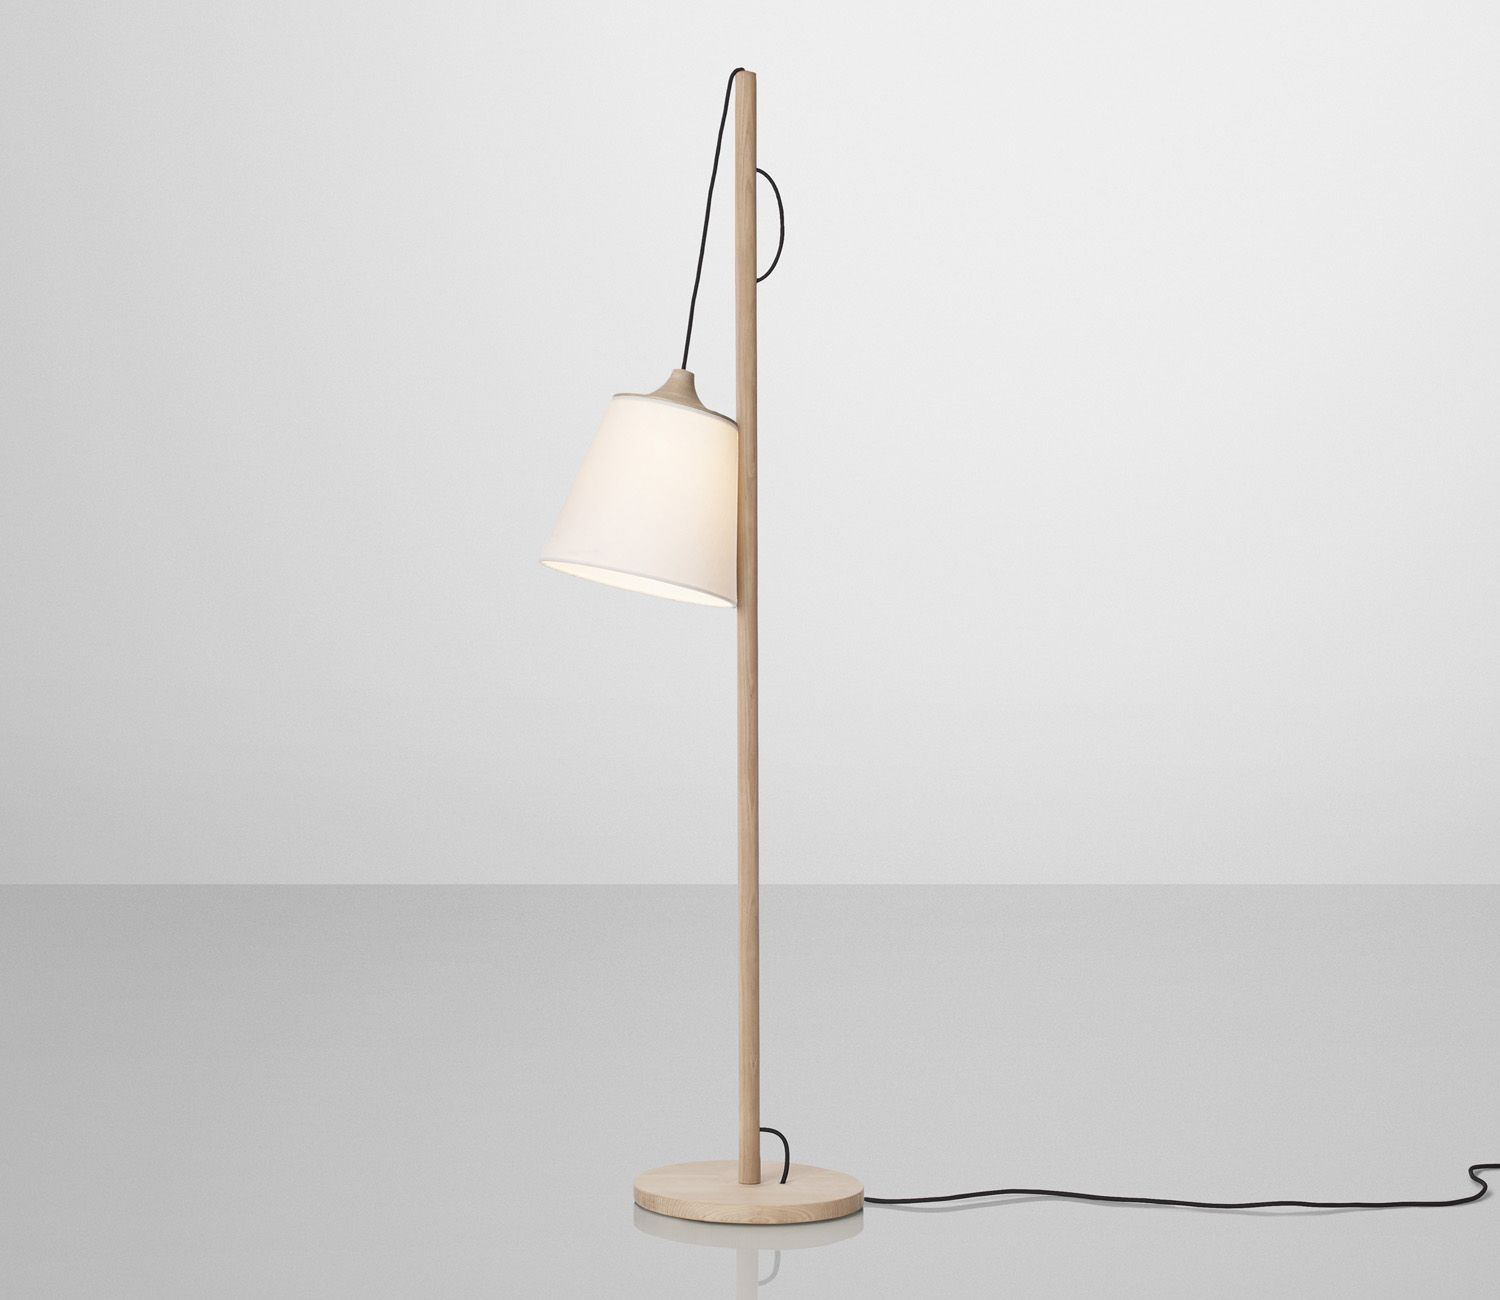 Muuto Pull Lamp with shade in lower position